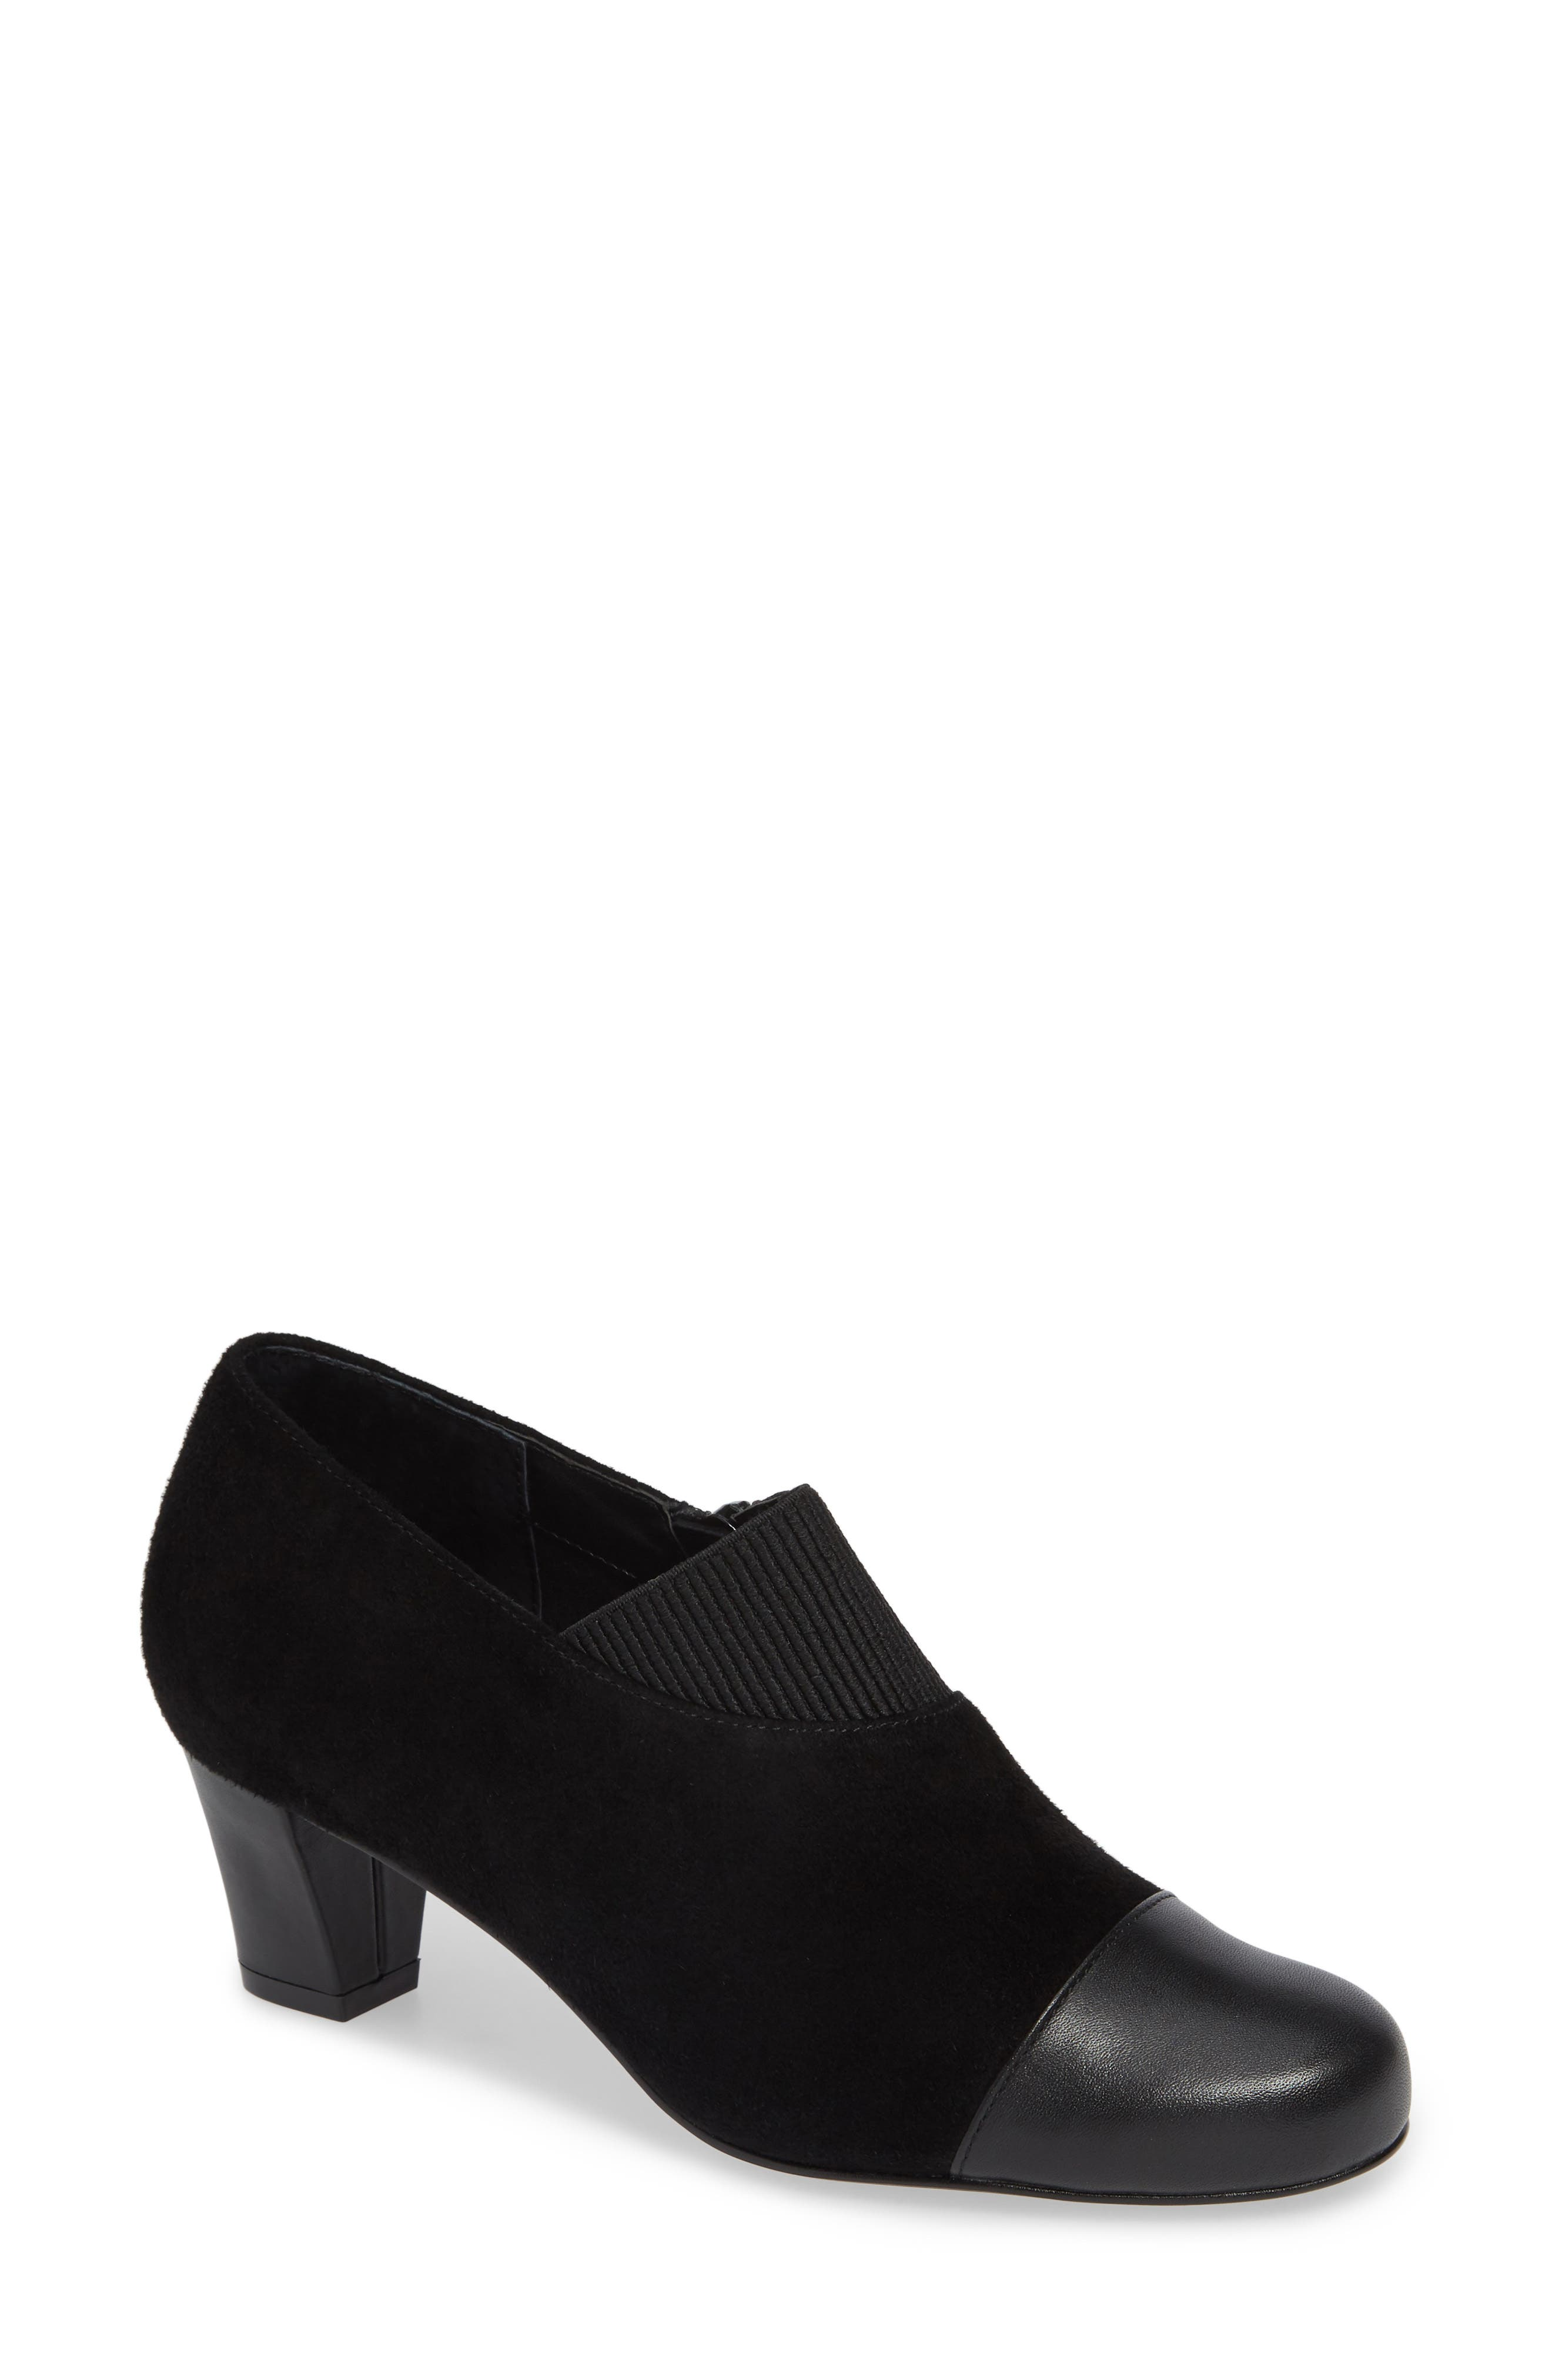 David Tate Hope Bootie, Black